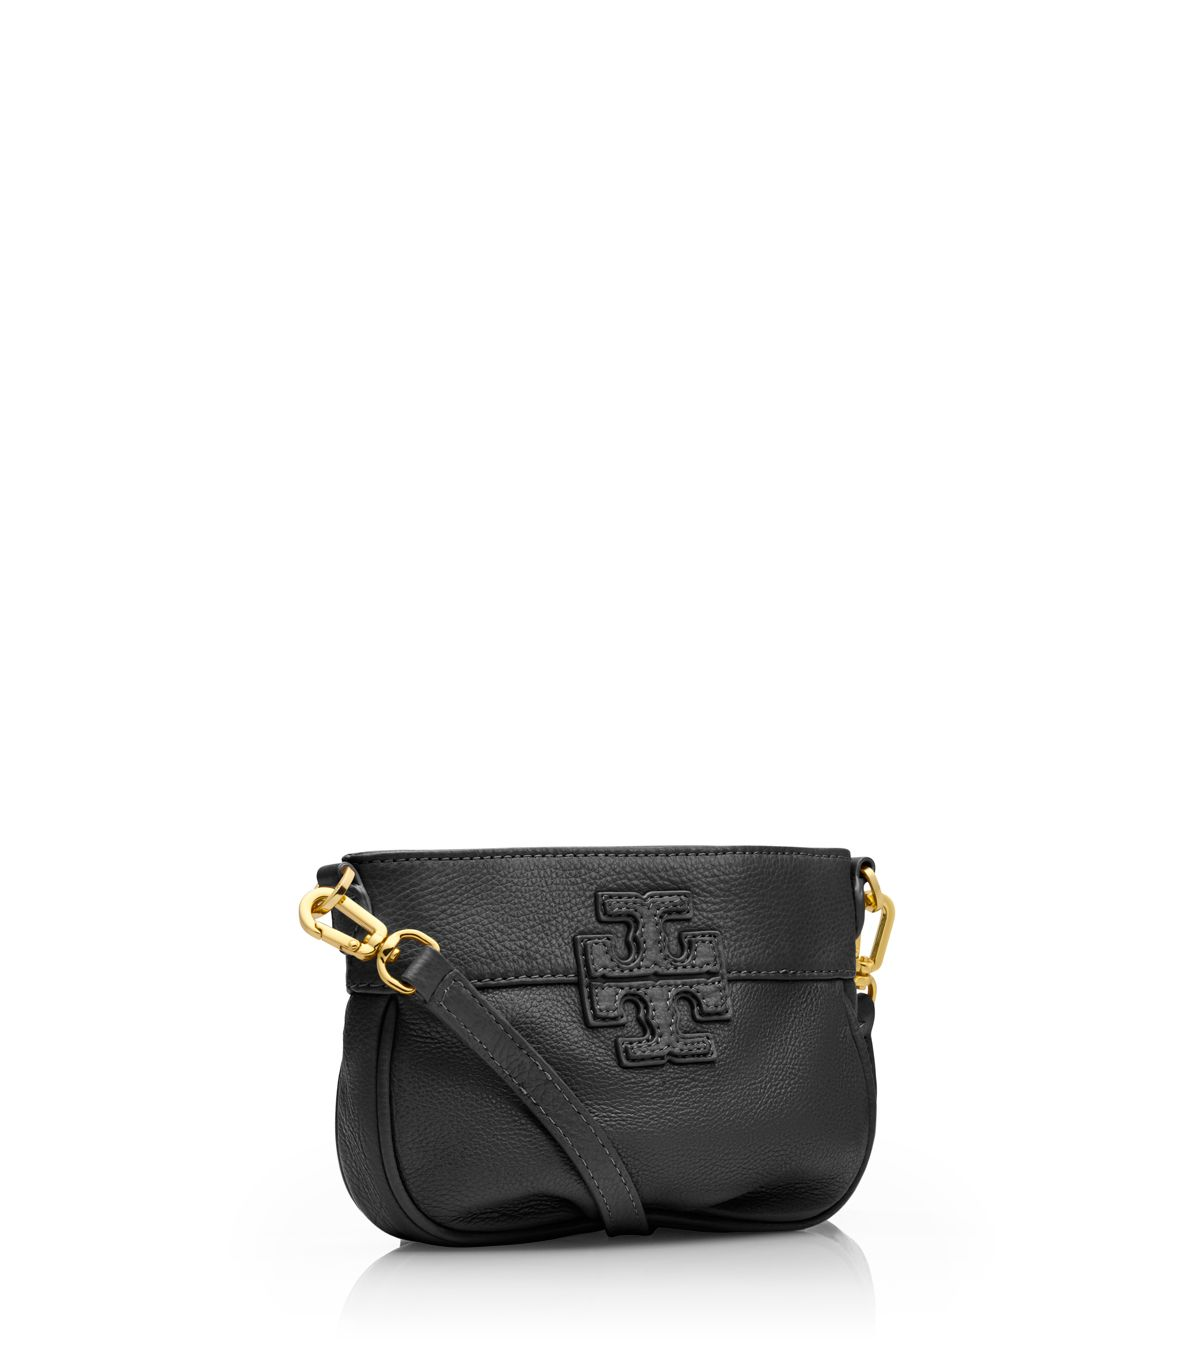 8eee931100a Lyst - Tory Burch Stacked T Leather Small Crossbody in Black